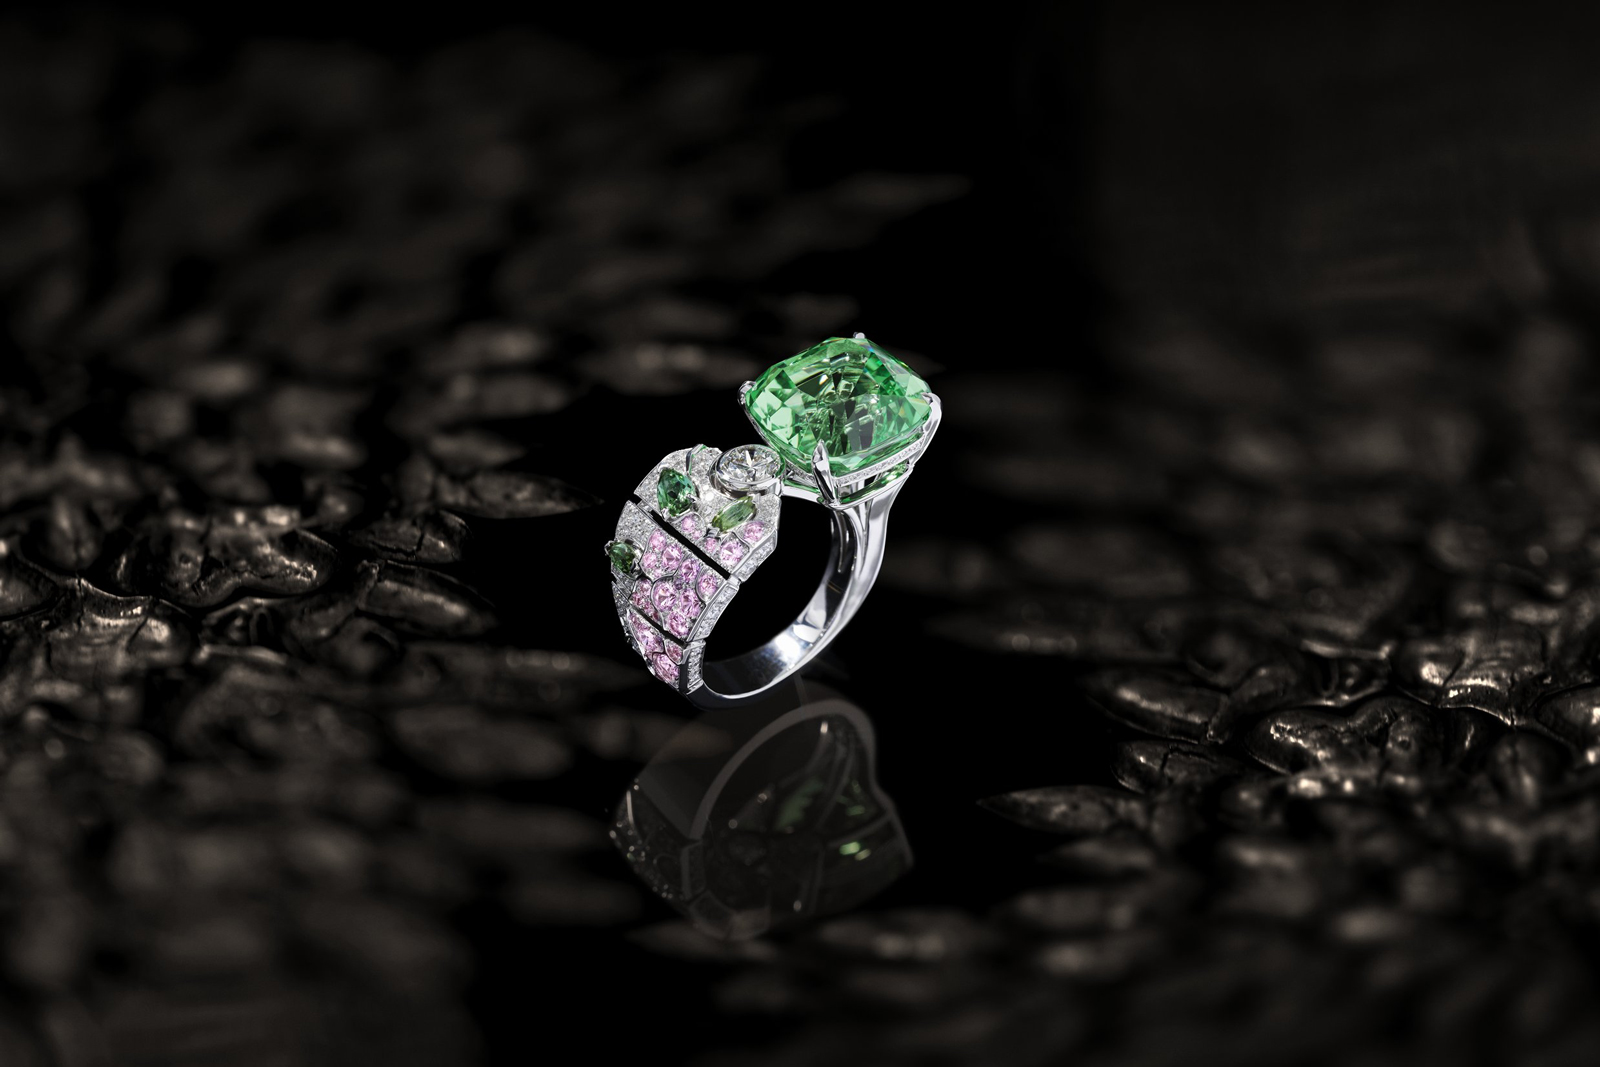 Chanel 'Bague Evocation Florale' ring from the 'Coromandel' collection with 12.05ct mint tsavorite, pink sapphires, diamonds and tourmalines